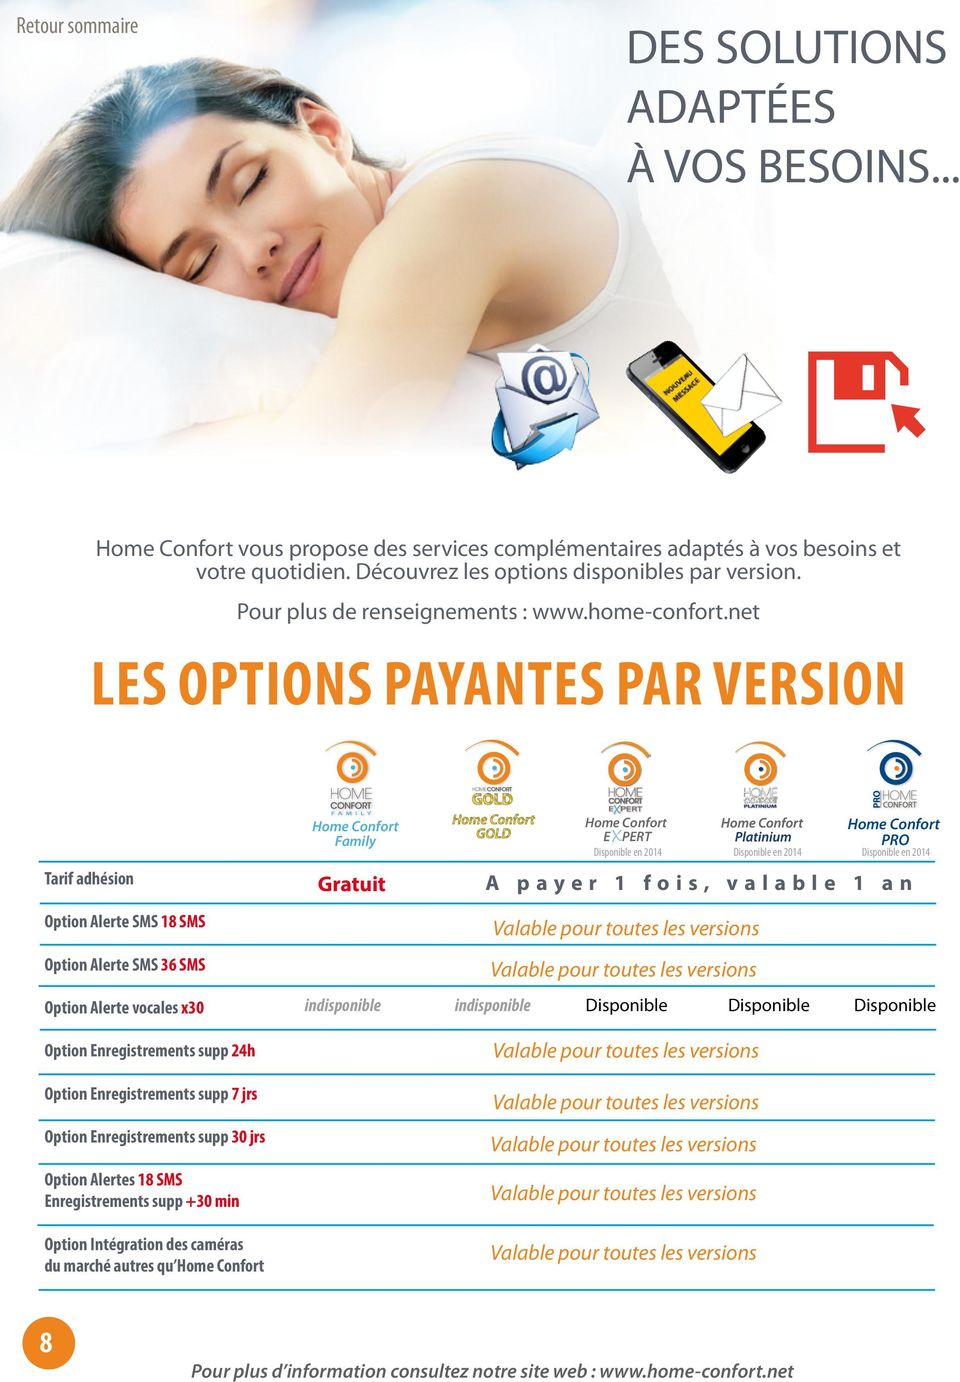 net Les options payantes par version Tarif adhésion Option Alerte SMS 18 SMS Option Alerte SMS 36 SMS Option Alerte vocales x30 Option Enregistrements supp 24h Option Enregistrements supp 7 jrs